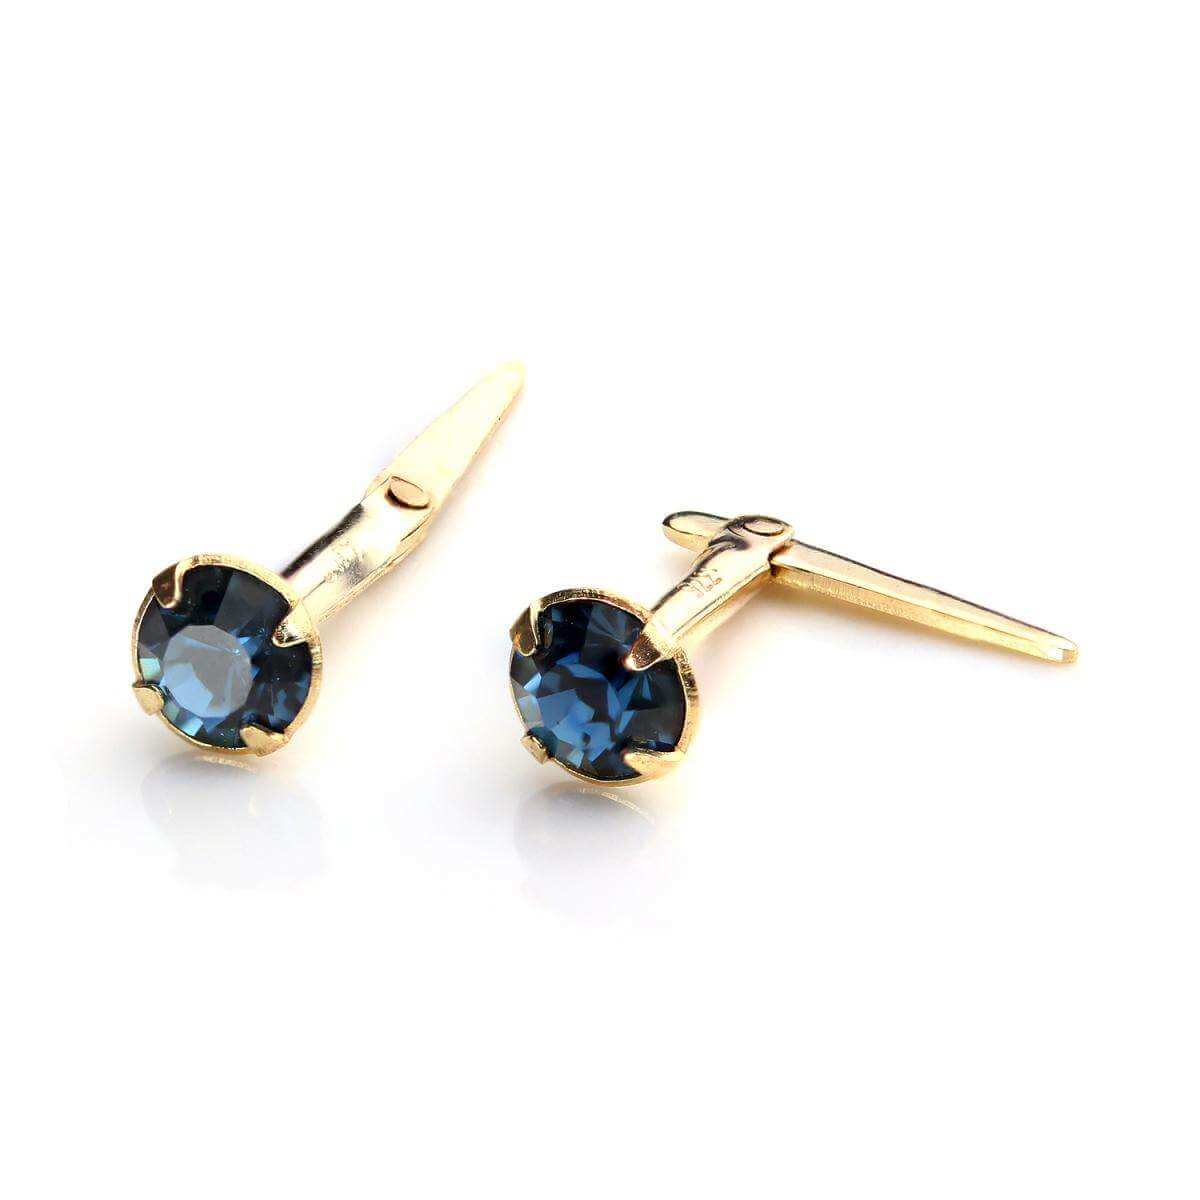 9ct Gold Andralok Stud Earrings with 3mm Montana Crystal